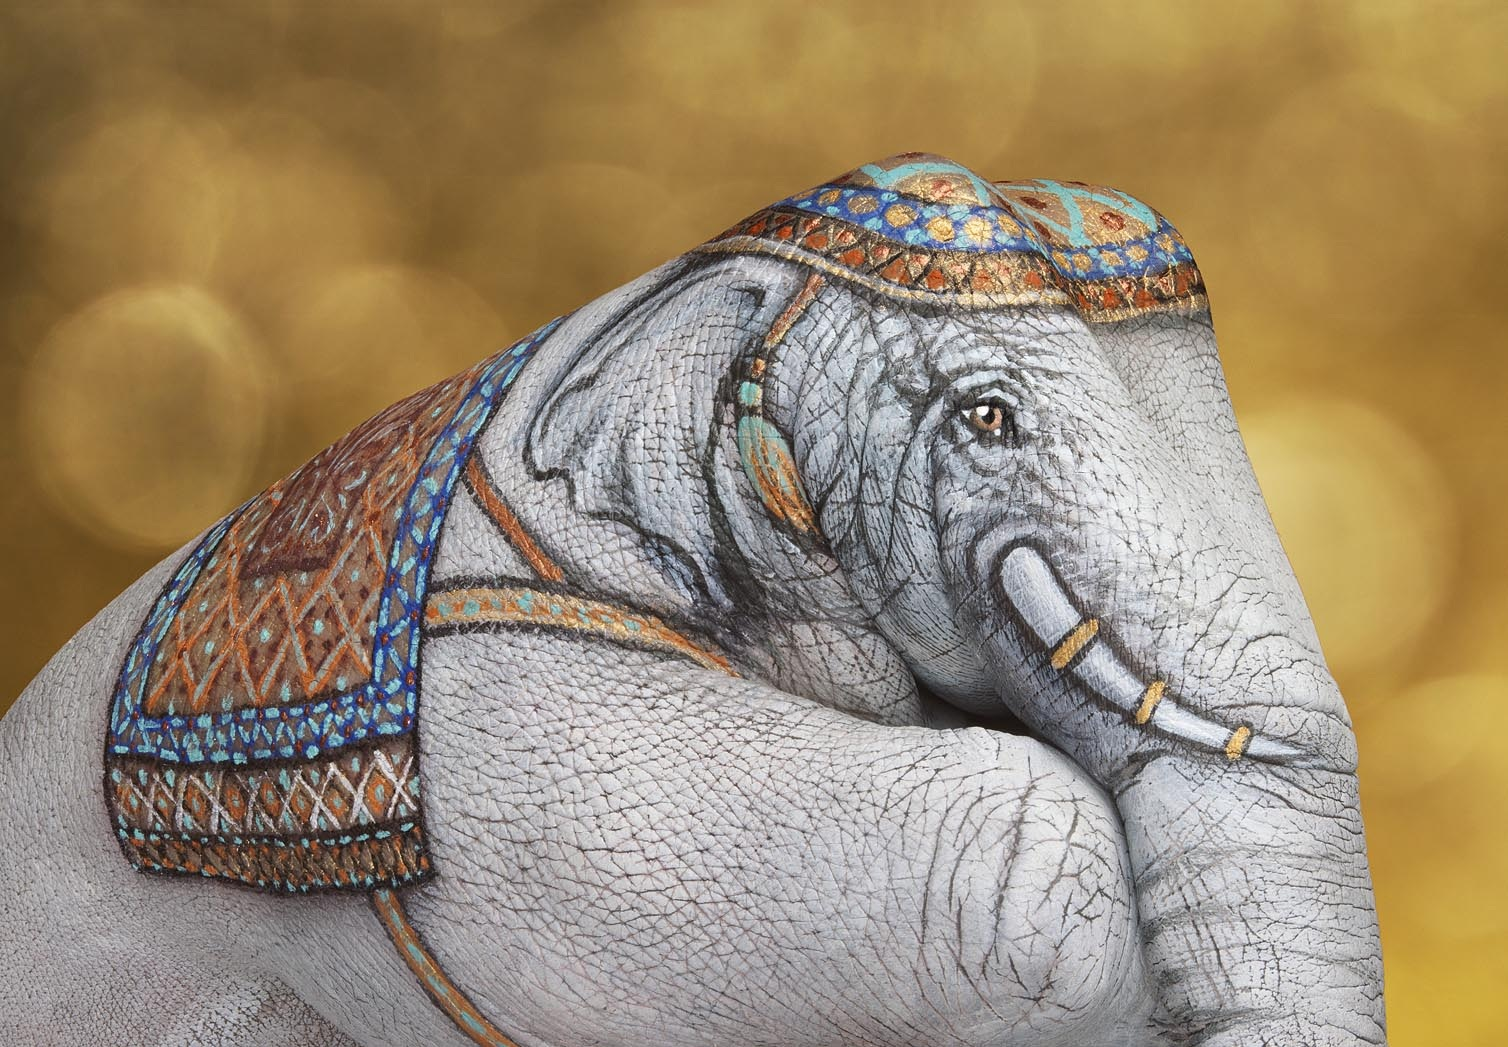 Animal-Hand-Paintings-by-Guido-Daniele-Elephant-India